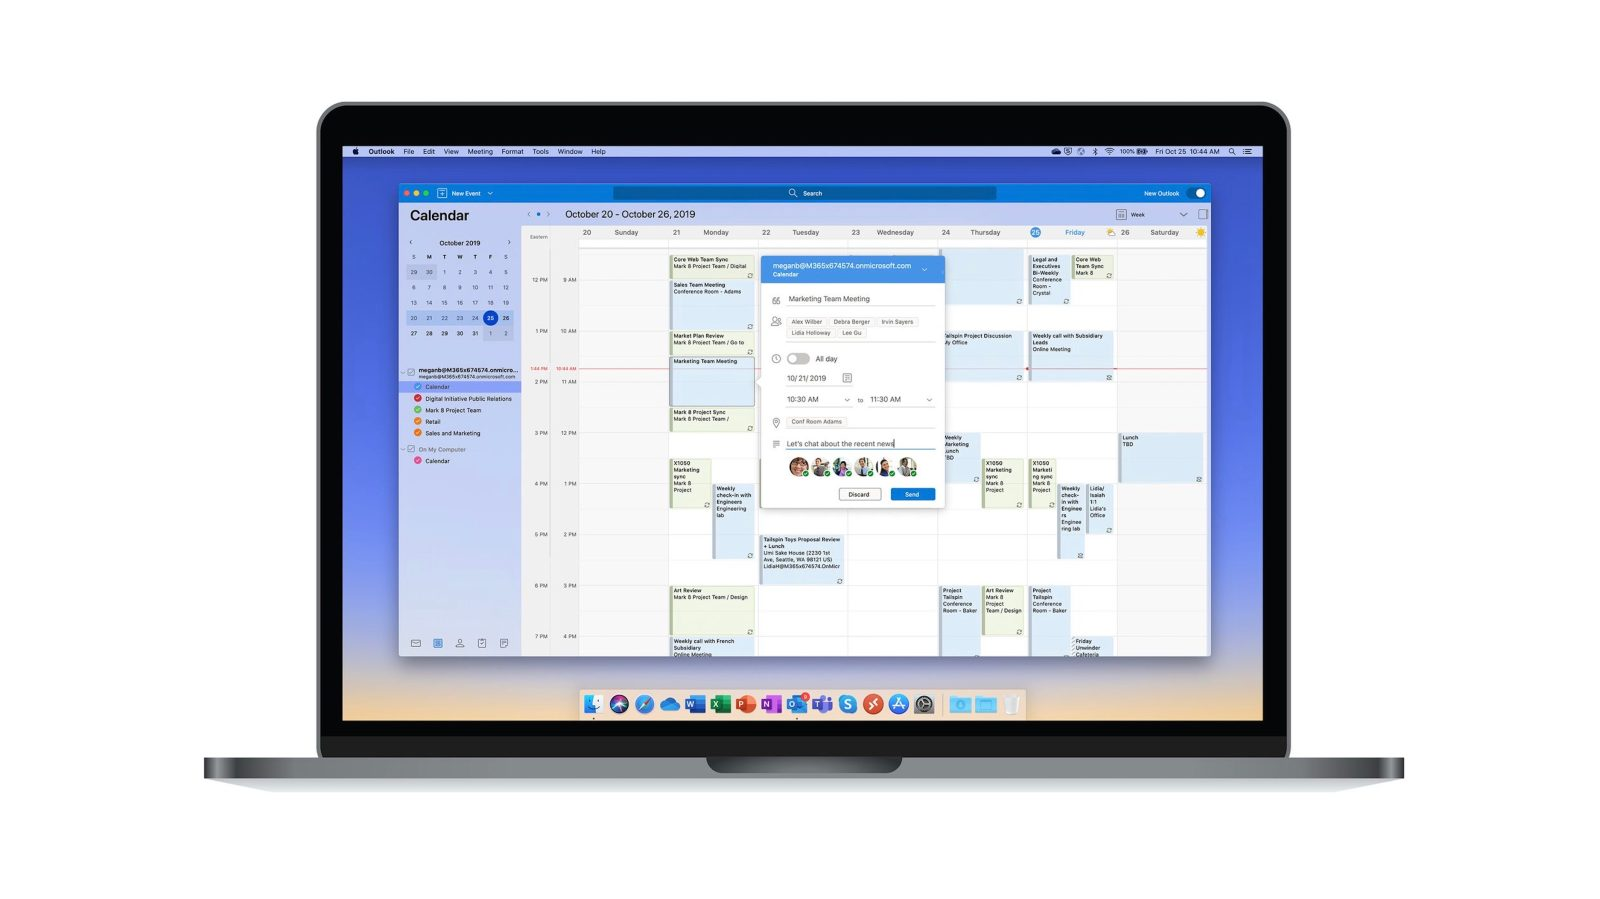 Microsoft overhauling Outlook for Mac with sync improvements, interface tweaks, more